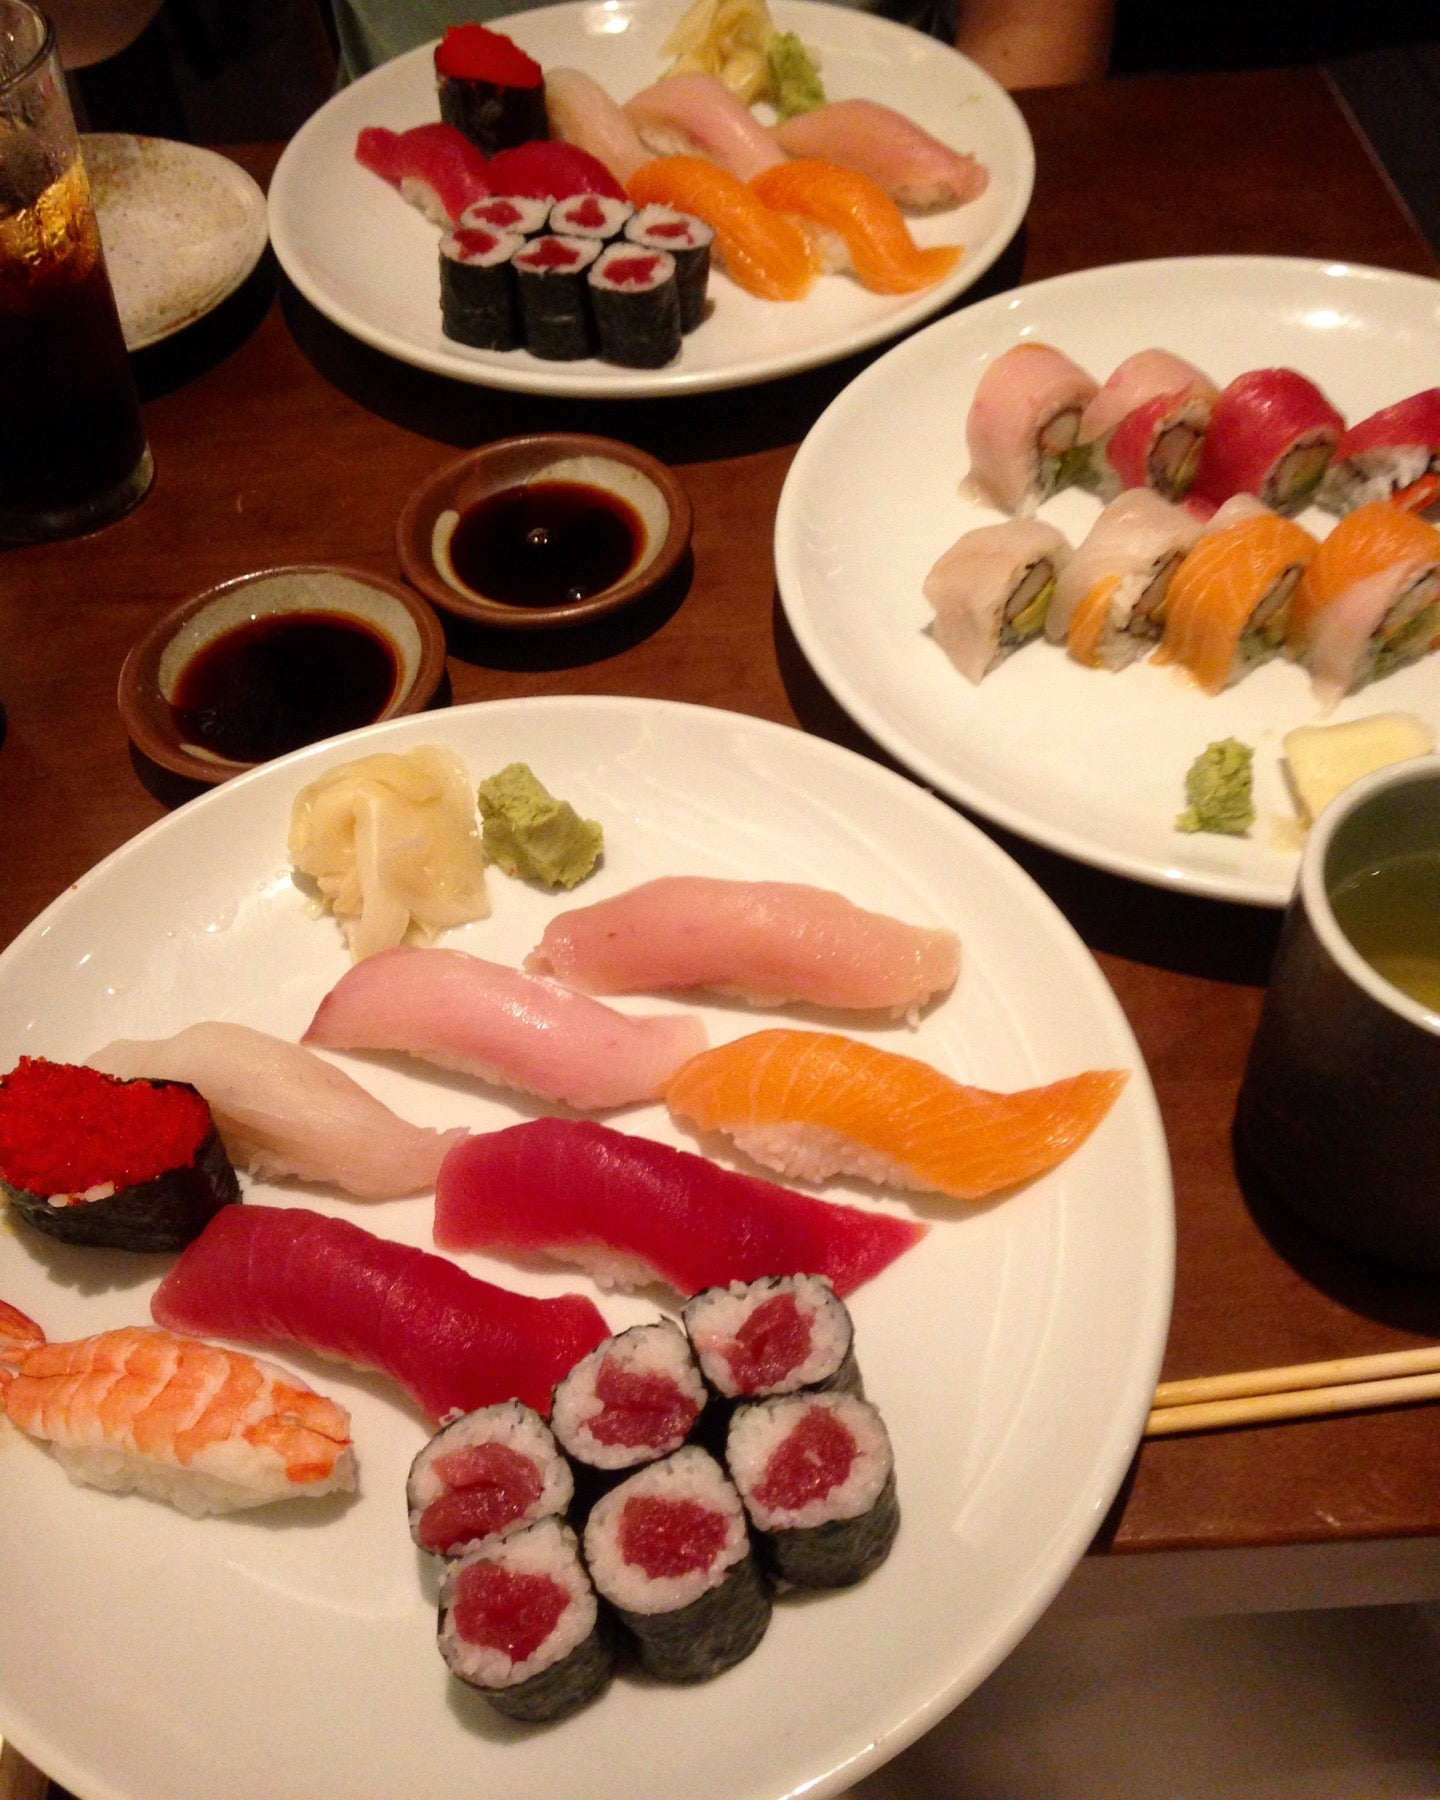 Haru Restaurant East,bar,japanese,manhattan,noodles,sake,sapporo,sashimi,sushi,upper east side